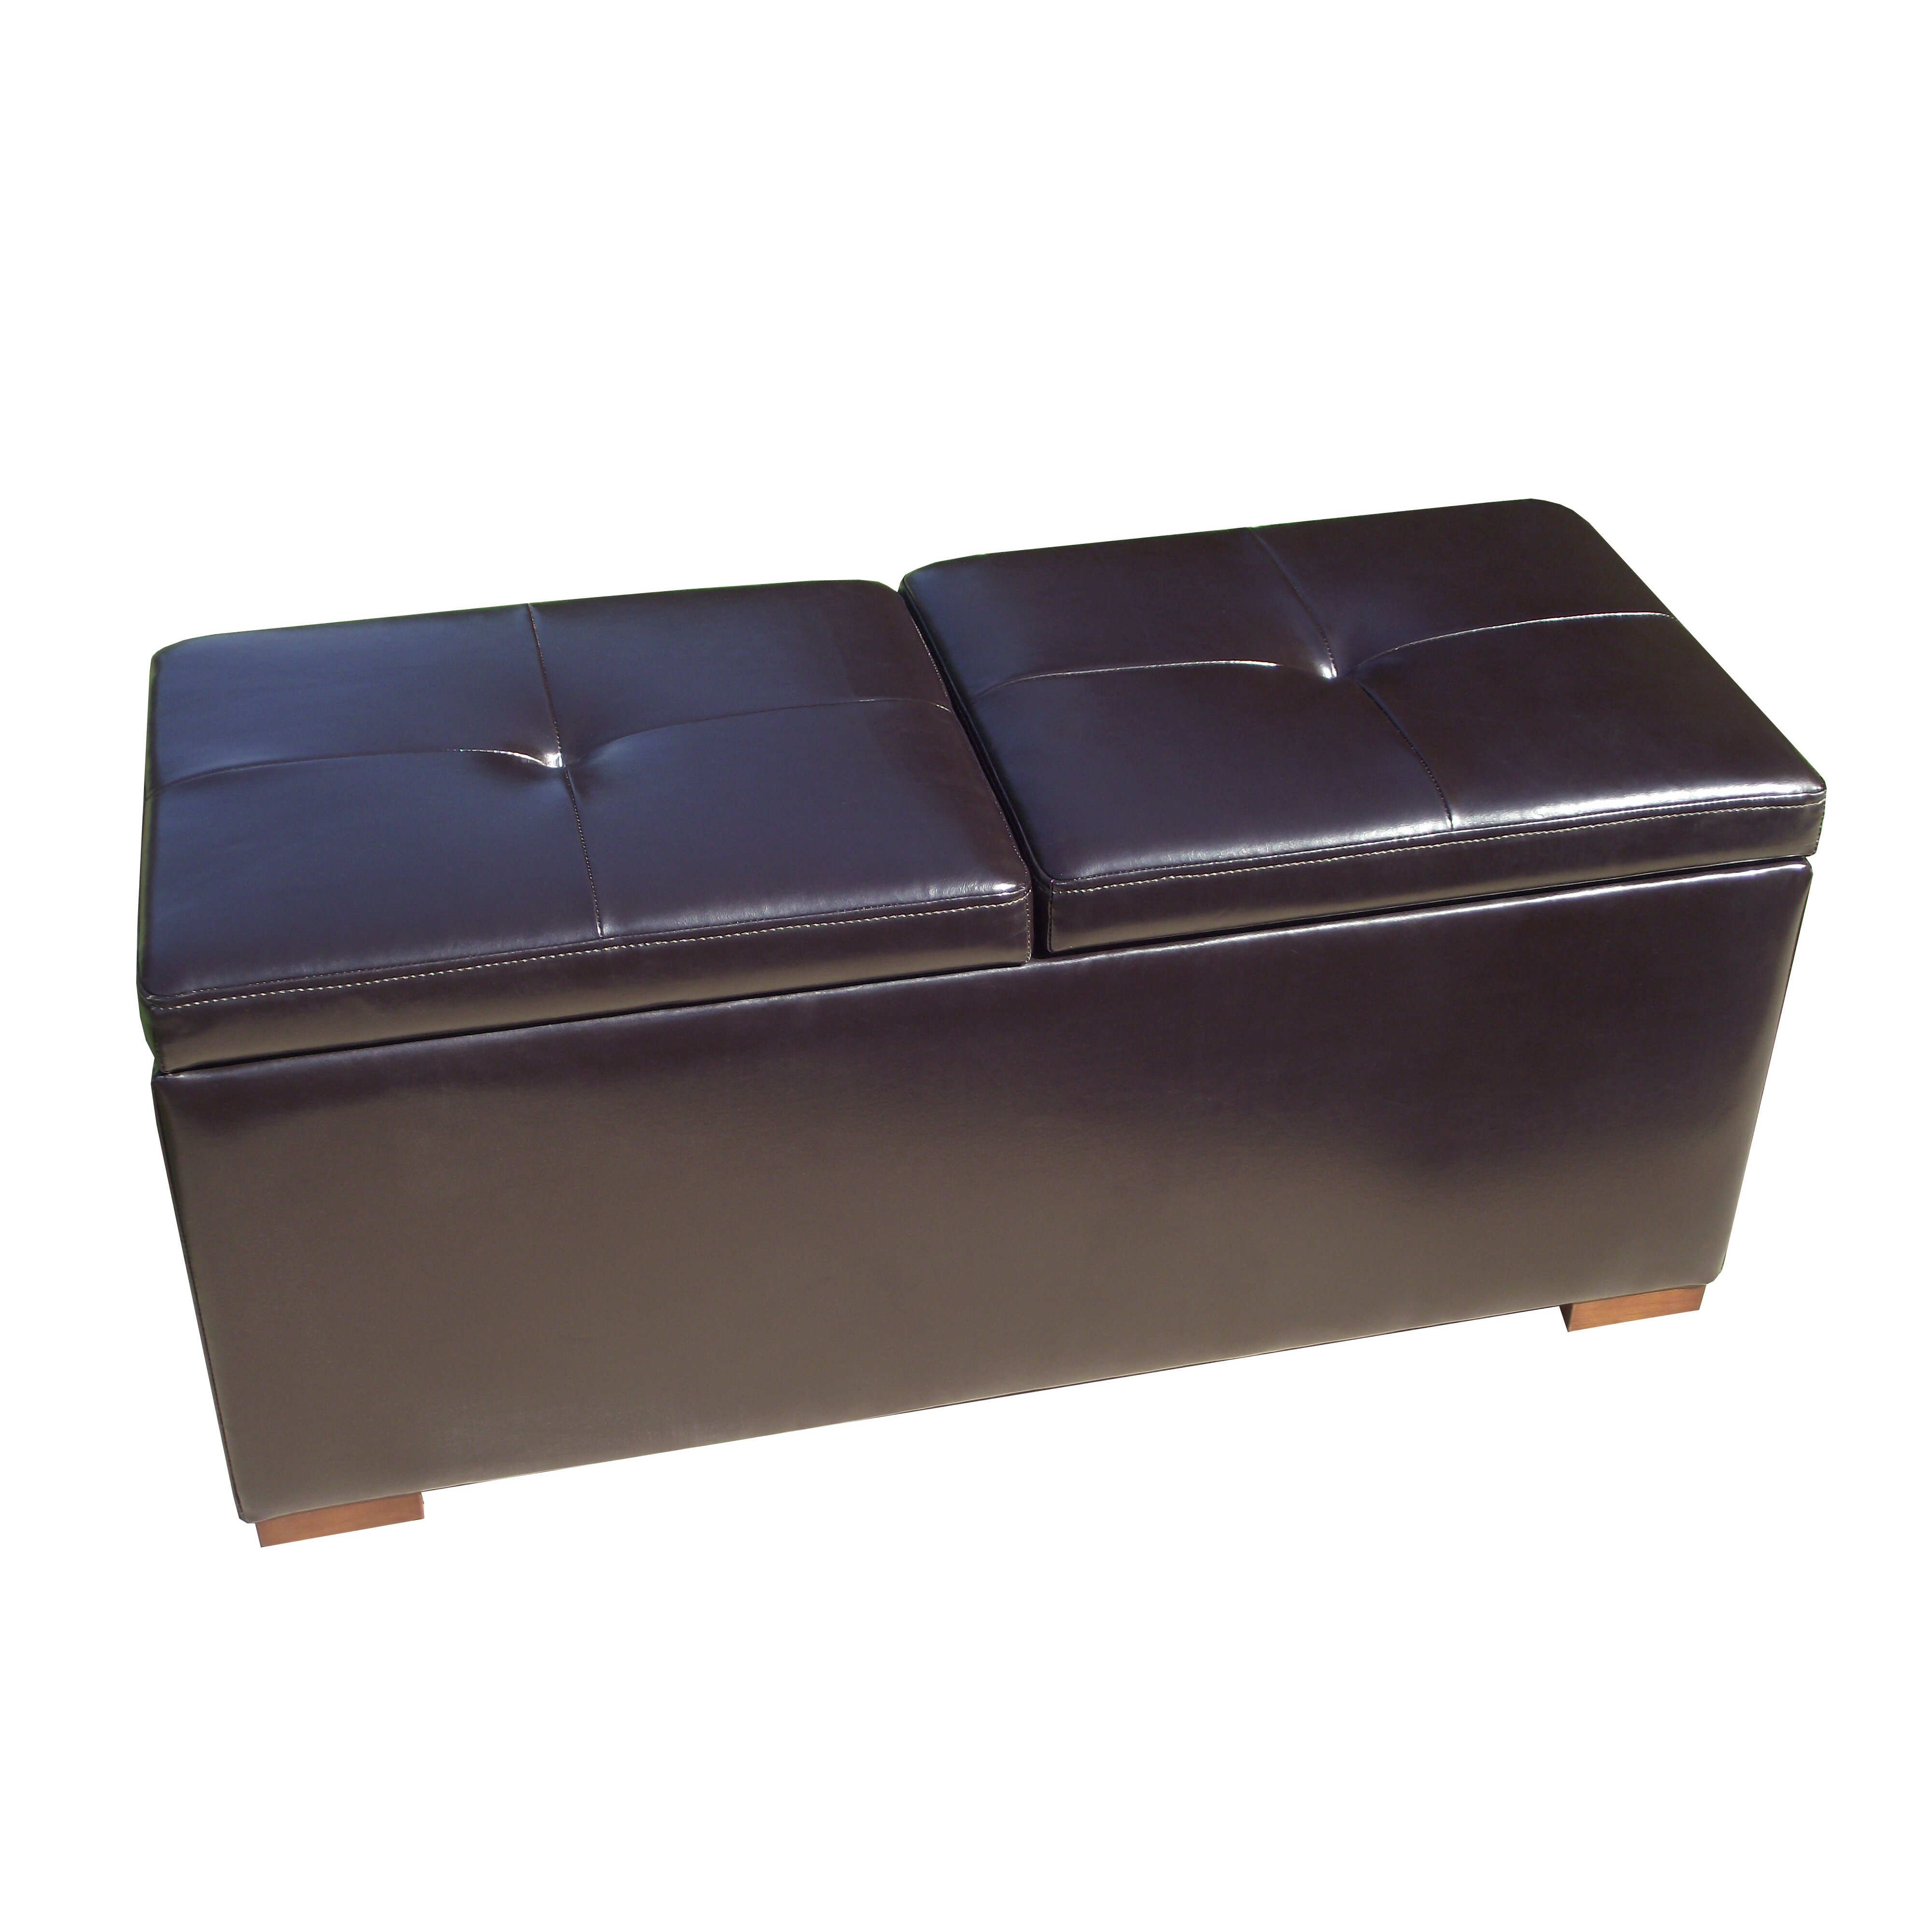 CORNER HOUSEWARES Paris Hope Storage Bench & Reviews